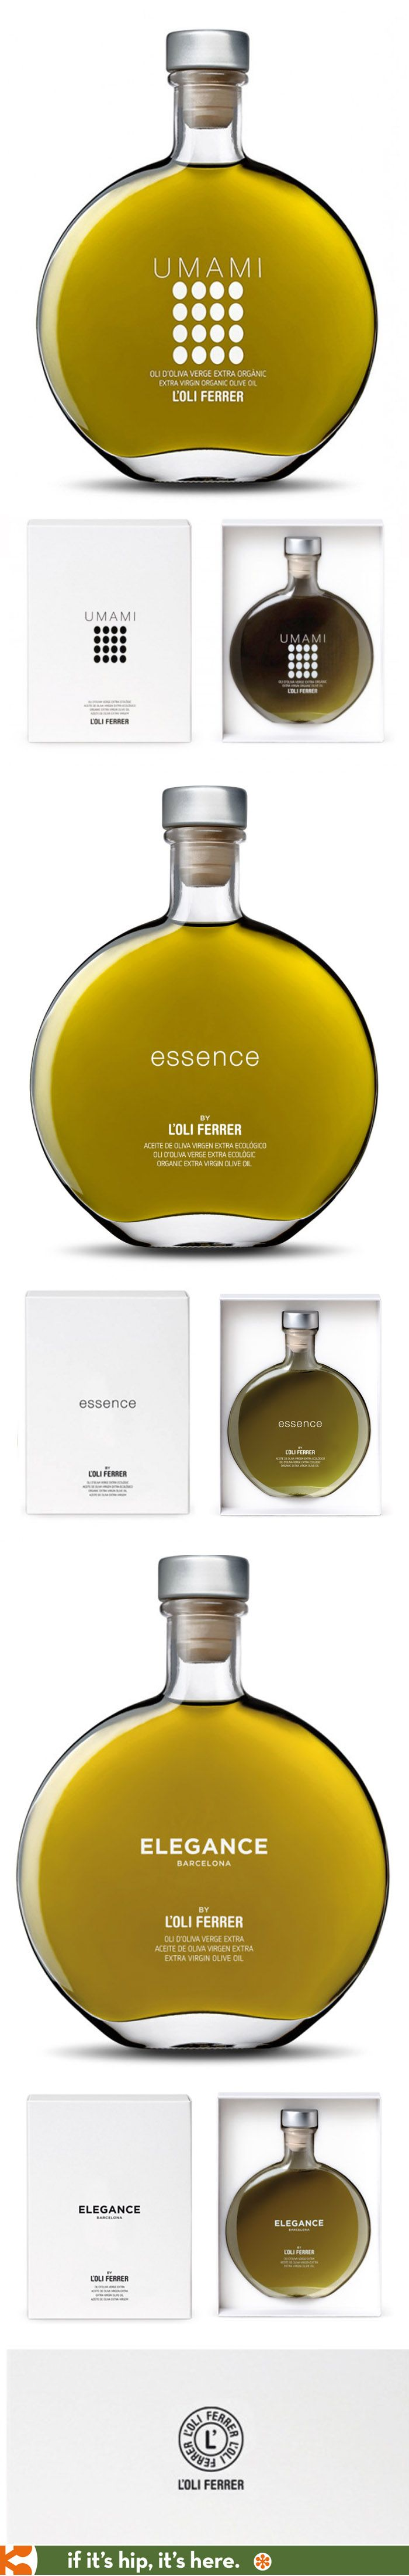 The olive oils from L'oli Ferrer are as beautifully designed and packaged as Chanel perfumes.